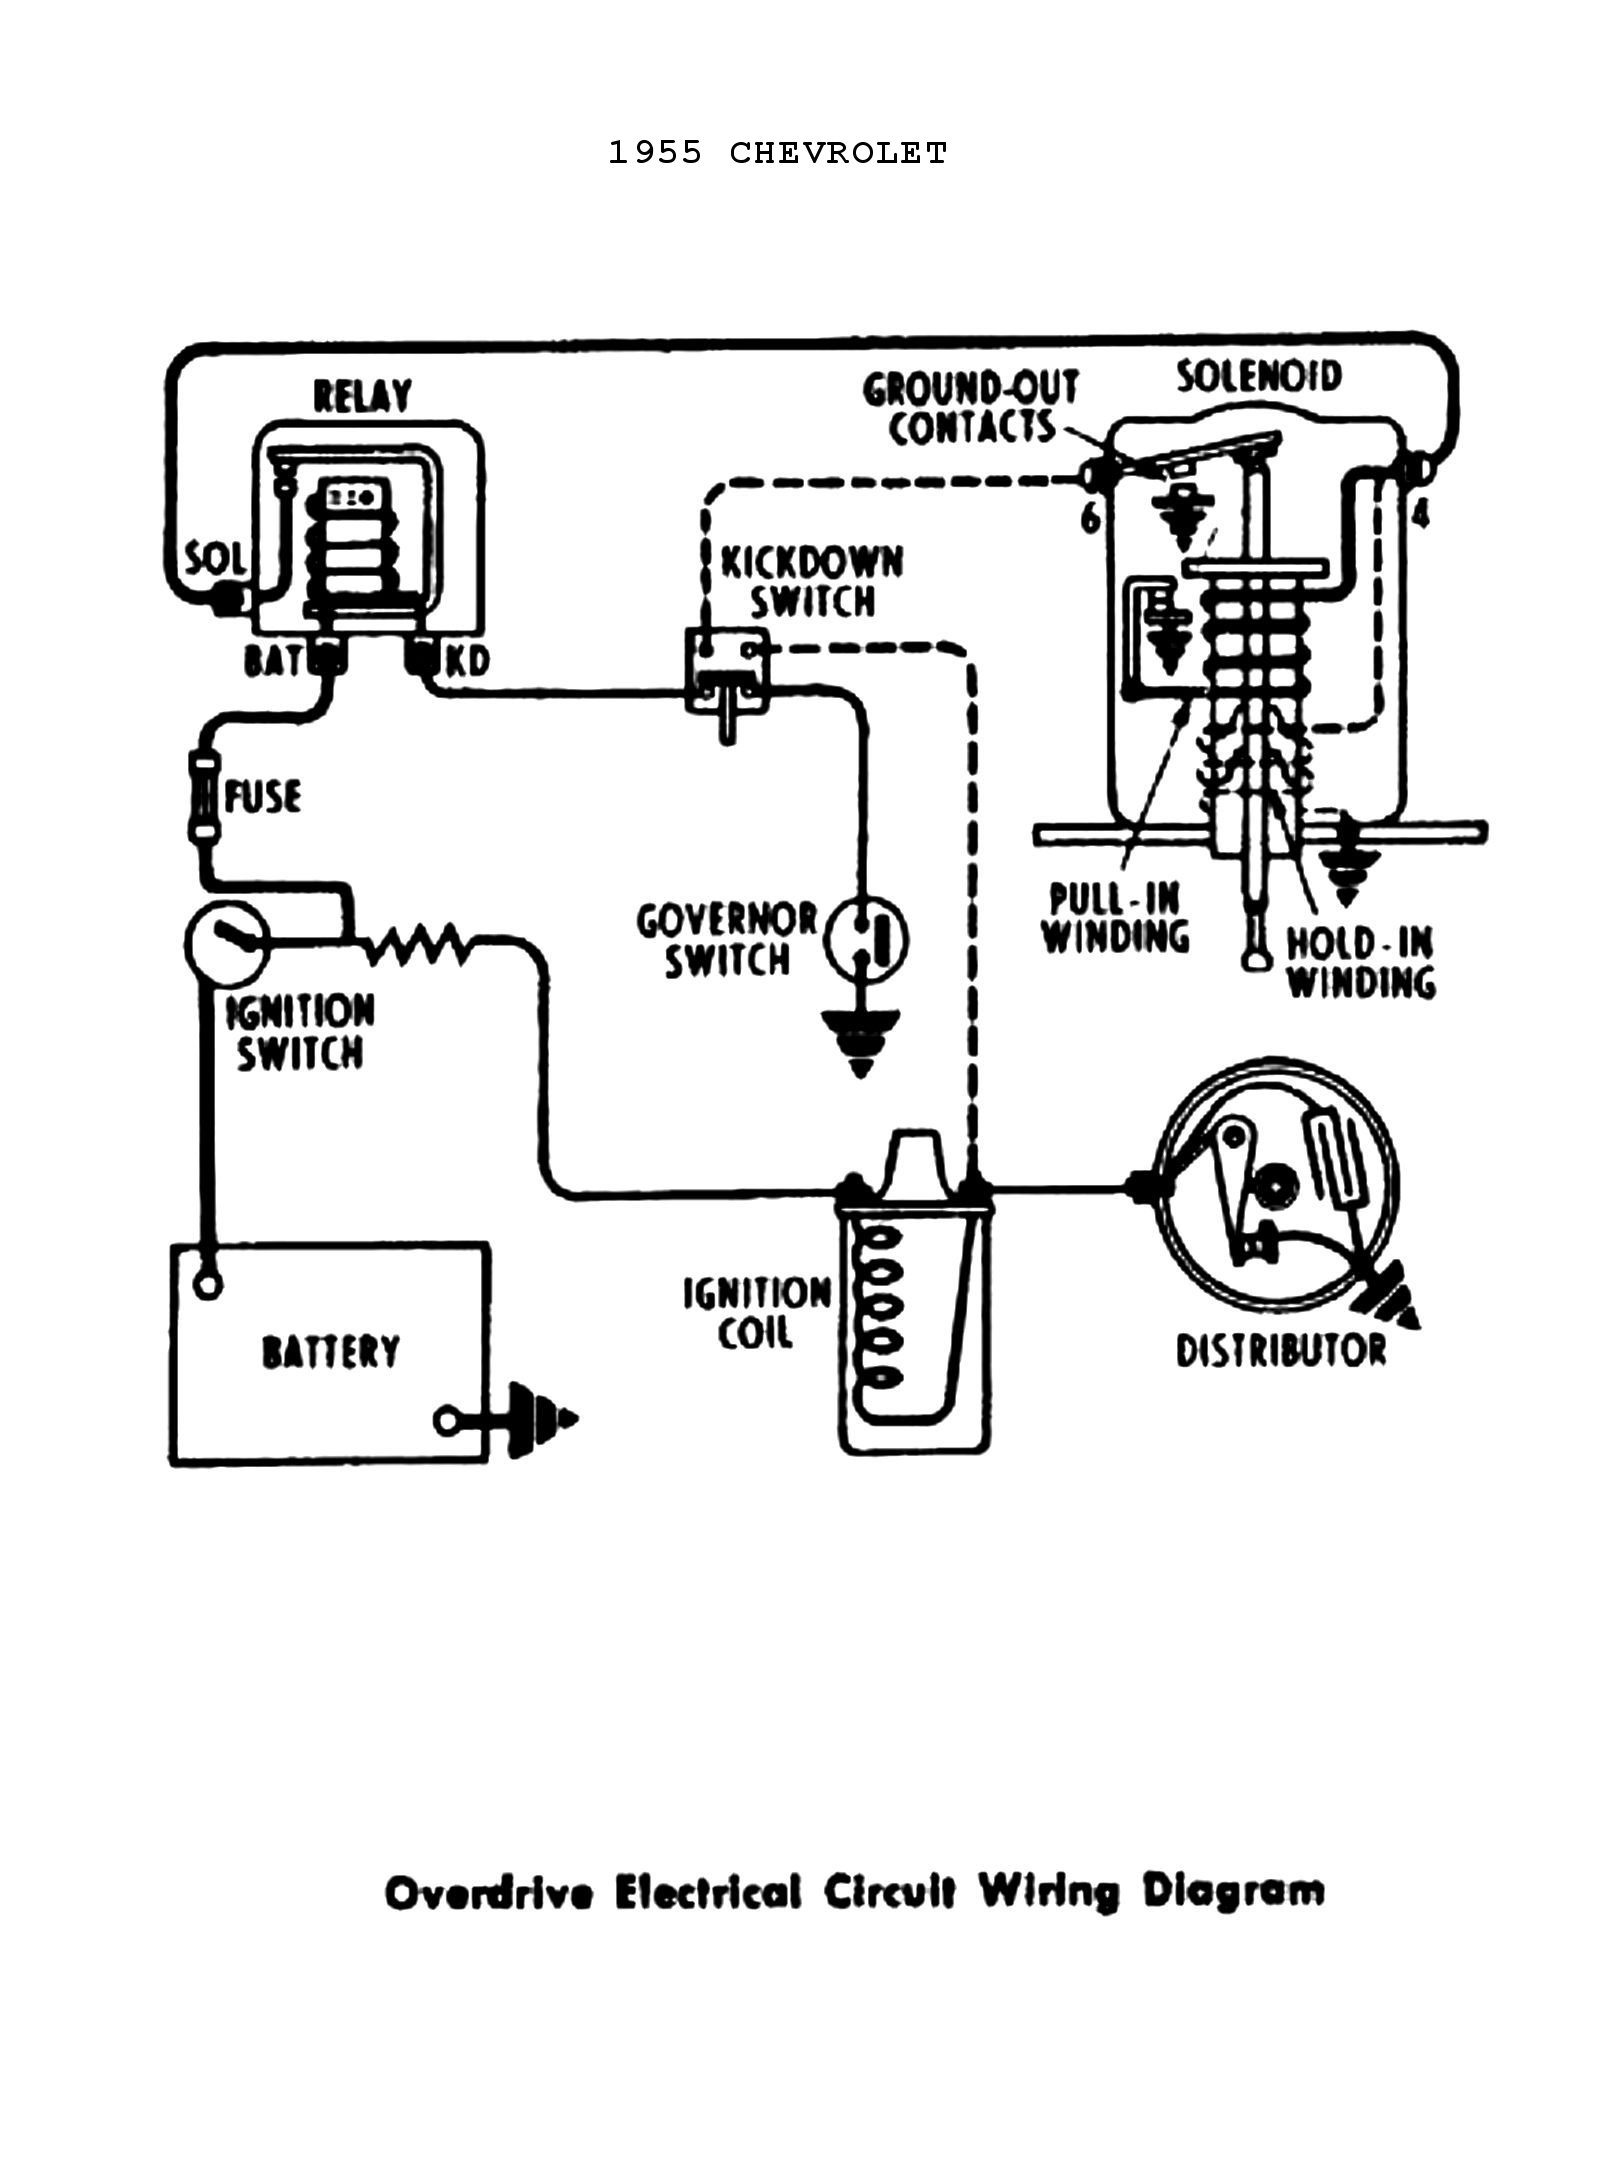 52 Chevy Ignition Switch Wiring Diagram Simple Wiring Diagram Chevy 350 Ignition  Wiring Diagram 52 Chevy Ignition Switch Wiring Diagram